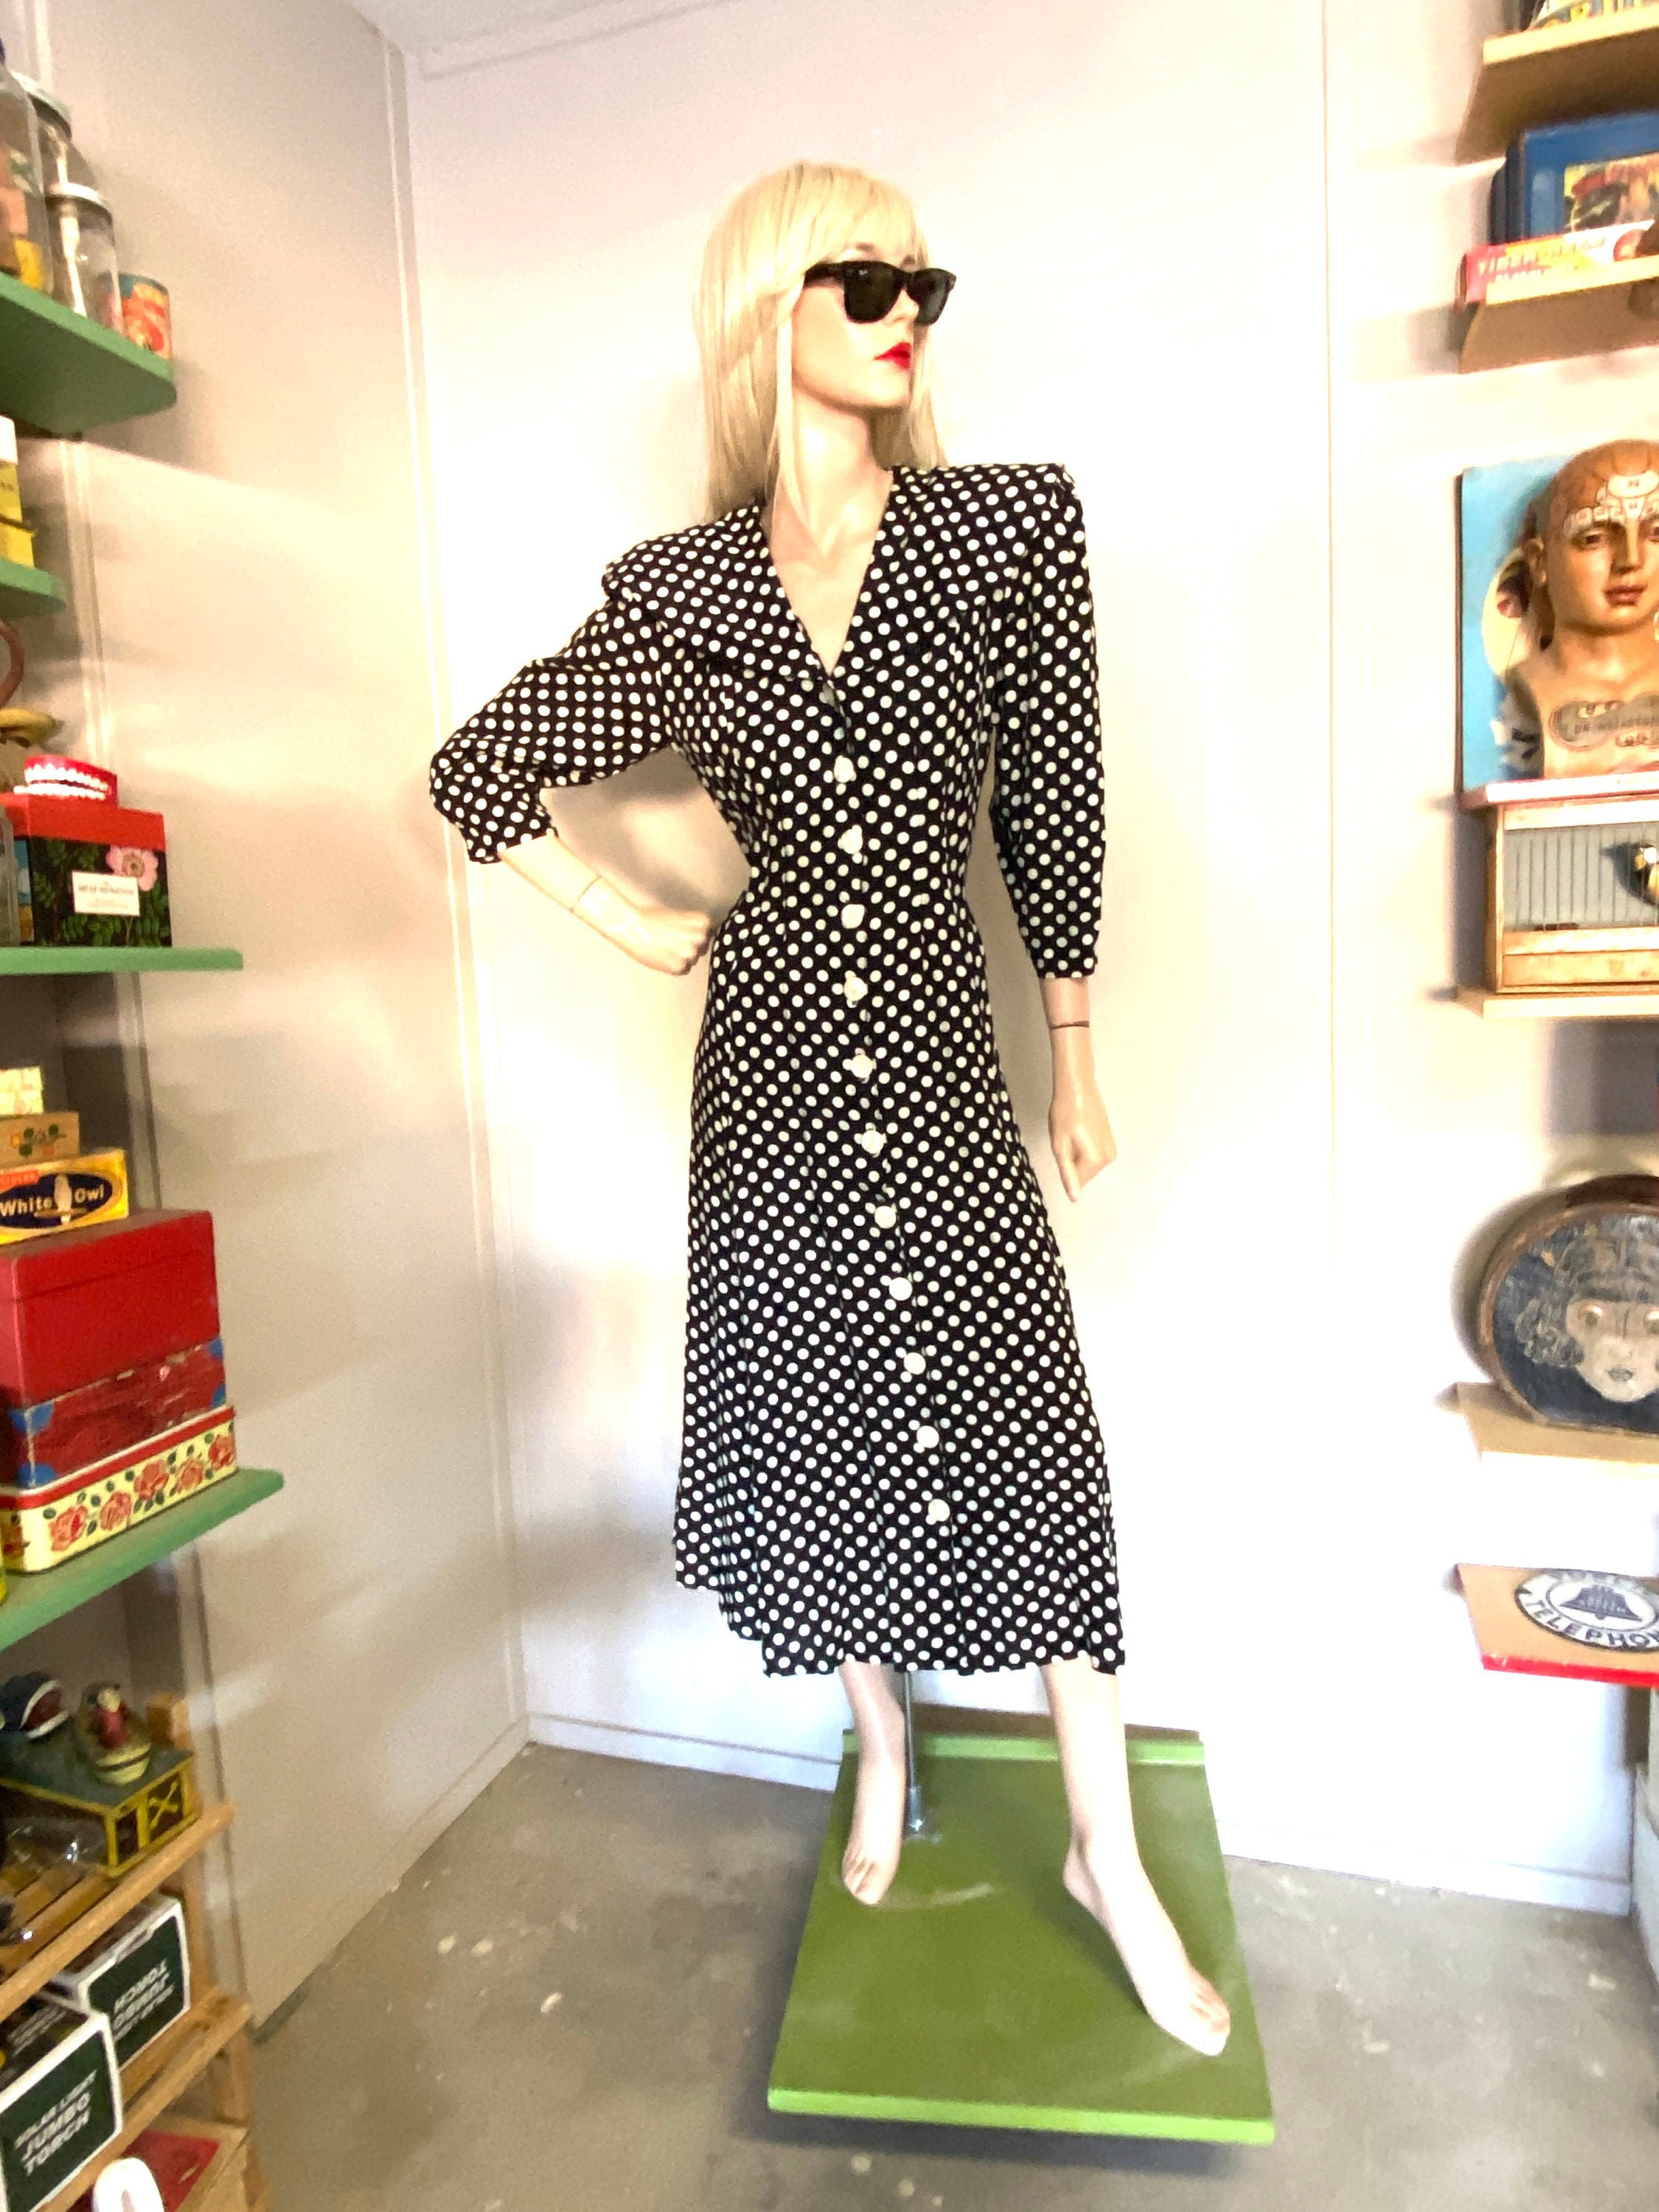 80s Dresses   Casual to Party Dresses 1980S Power Dress Polka Dot Buttons Shoulders $35.00 AT vintagedancer.com